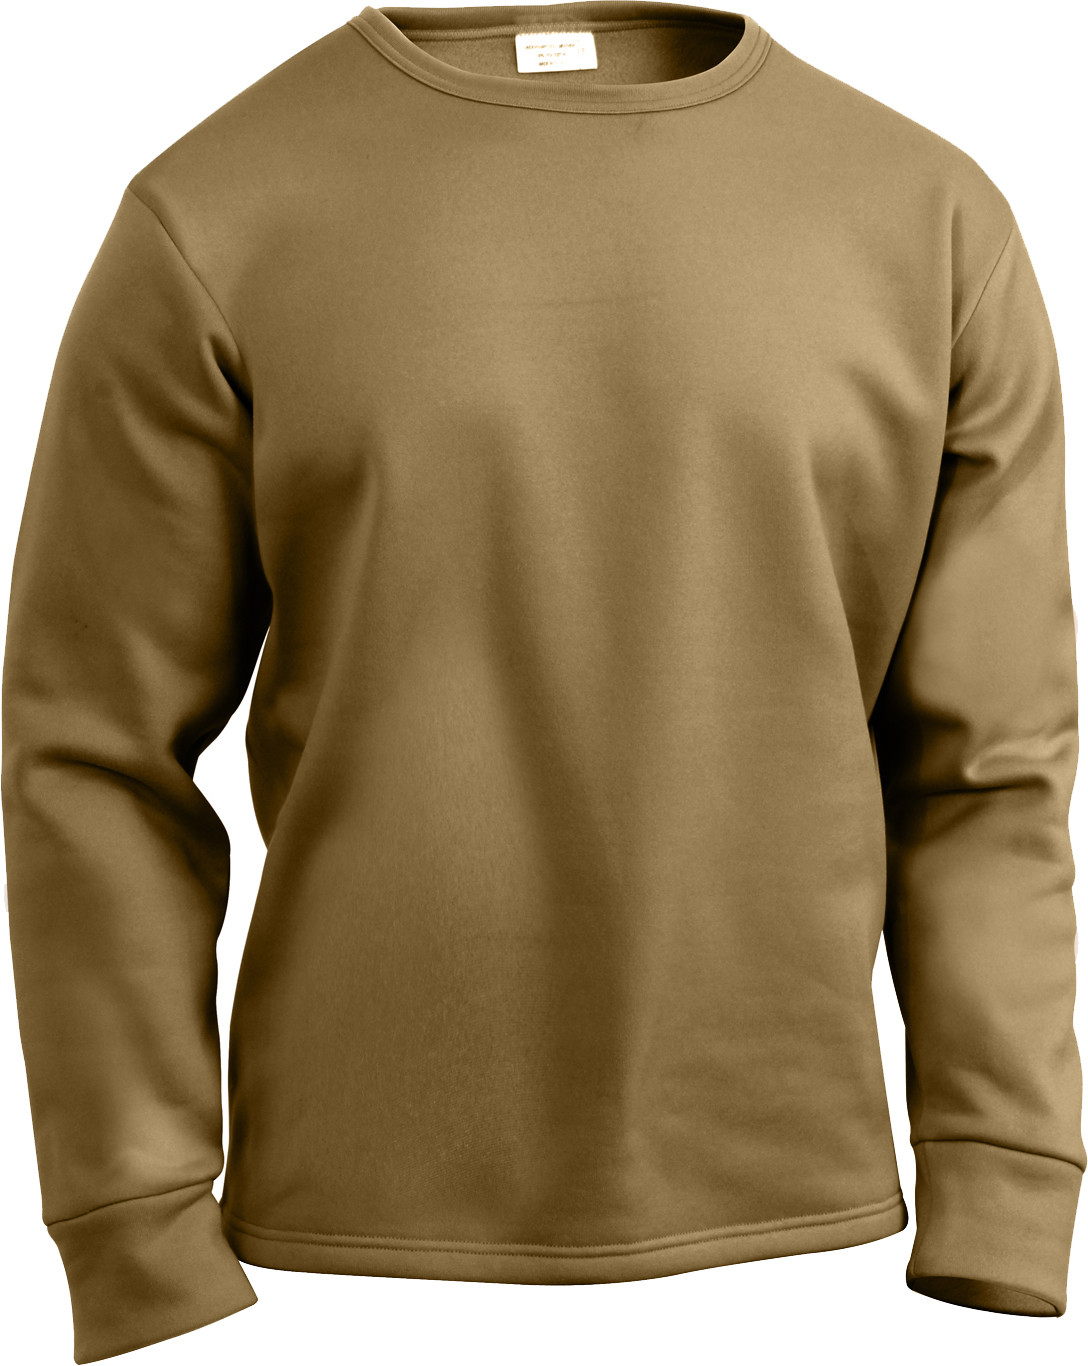 Coyote Brown ECWCS Cold Weather Crew Neck Shirt Thermal Top ... 6587cbd6a7f